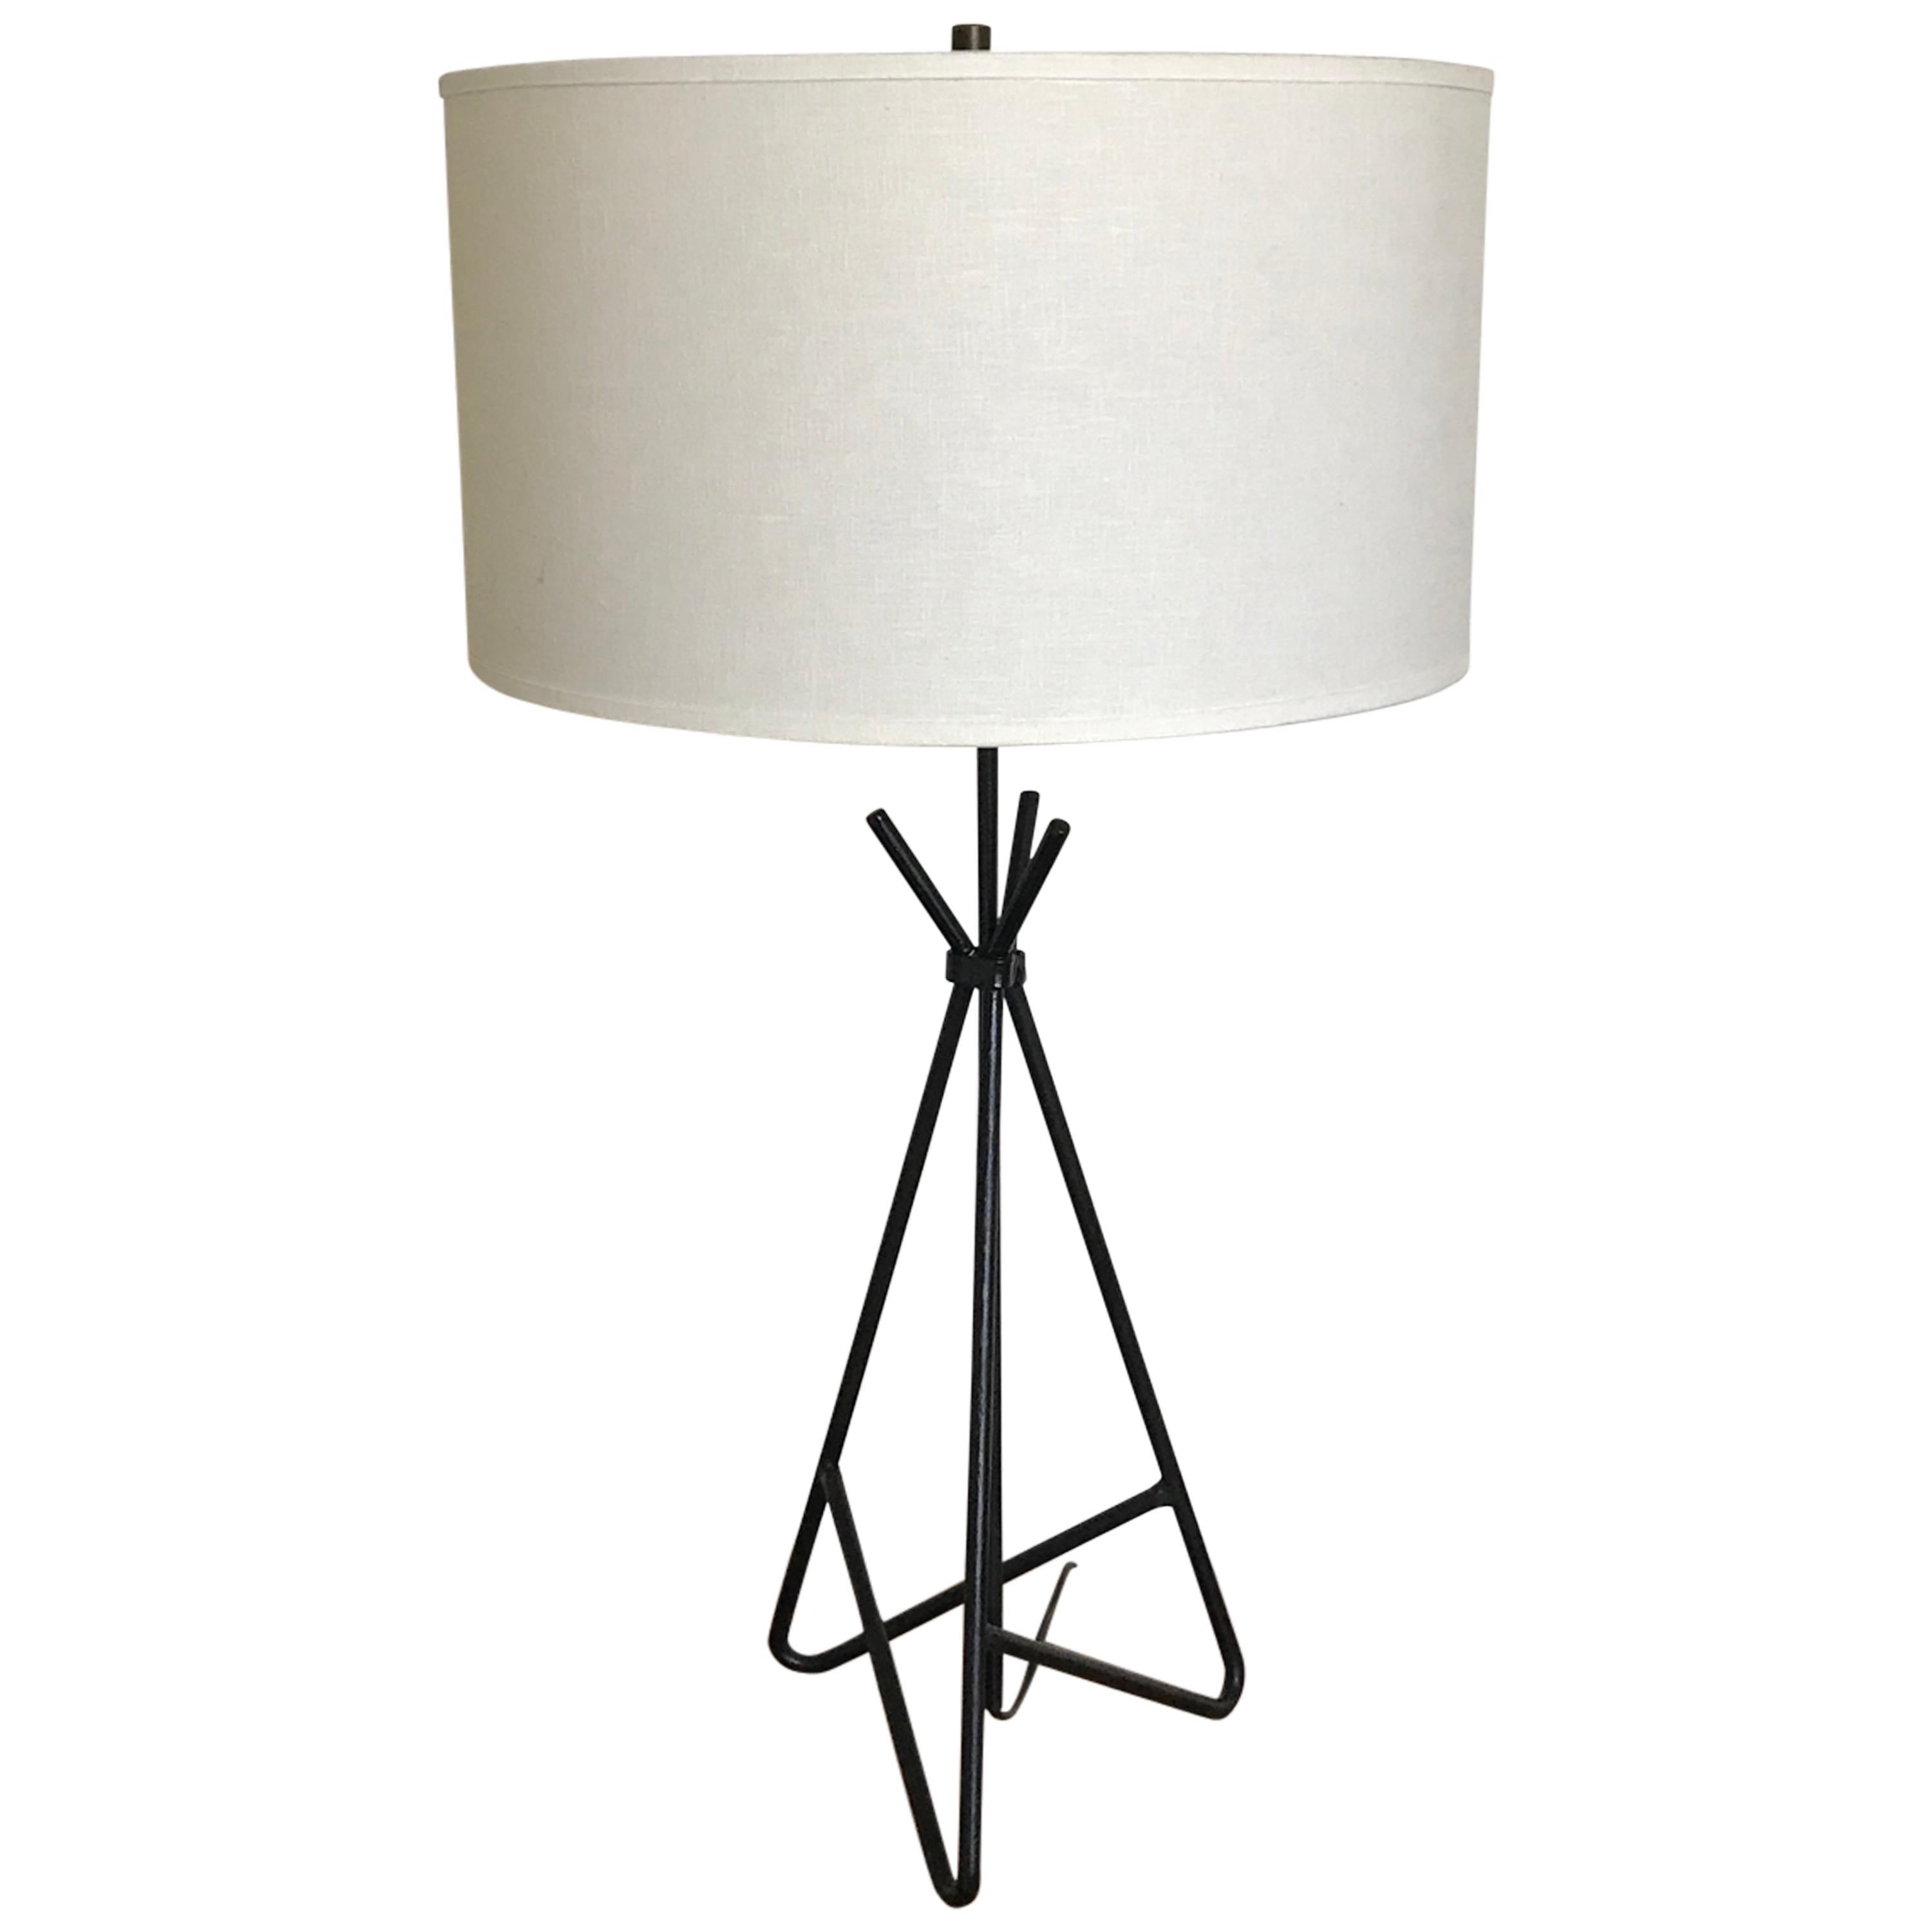 Mid Century Frederic Weinberg Black Wrought Iron Table Lamp, 1950s